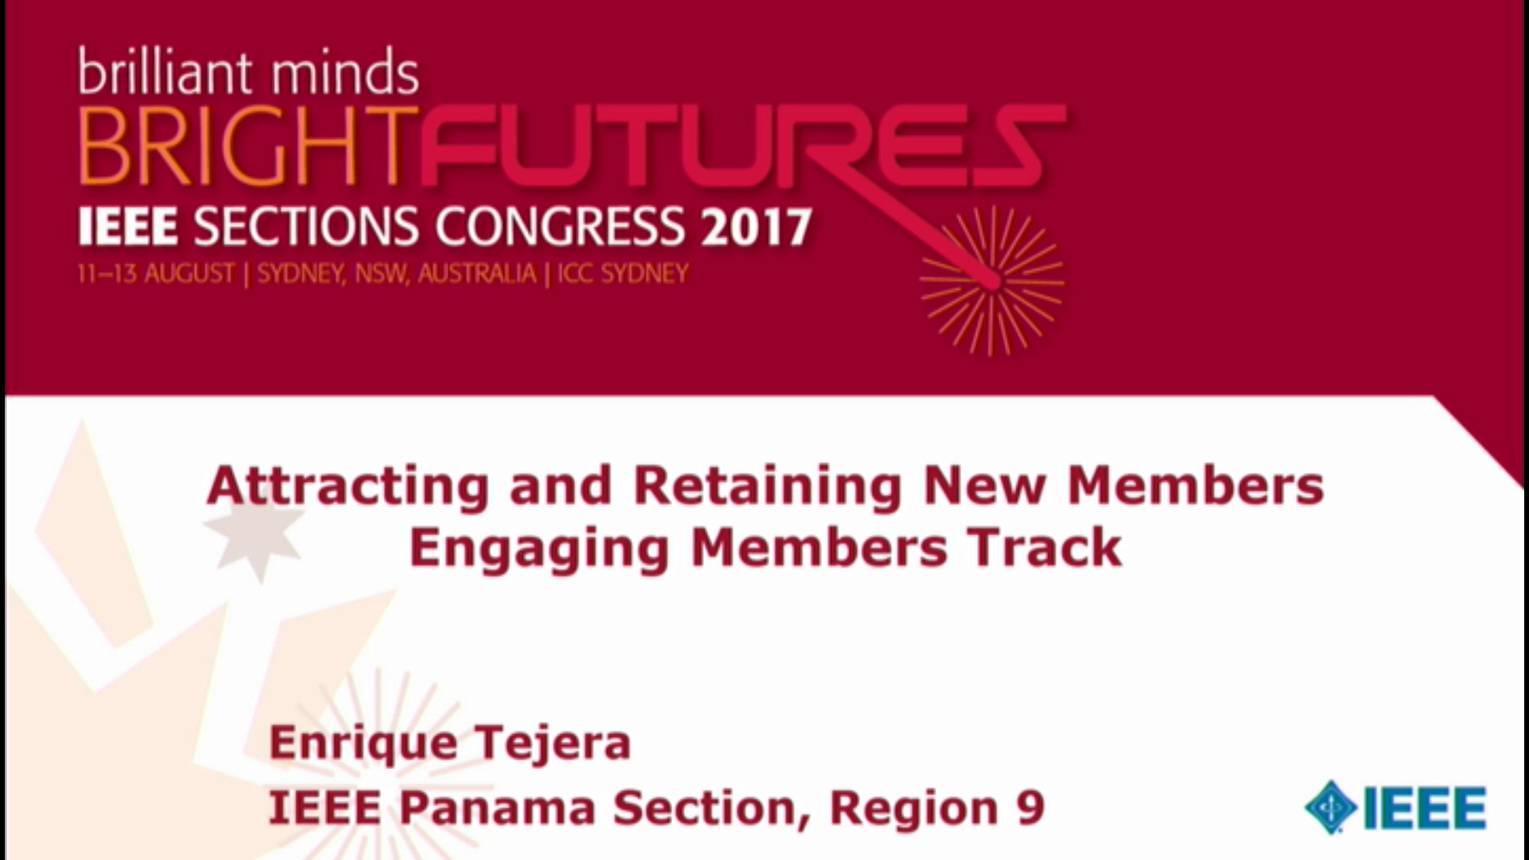 Attracting and Retaining New Members - Enrique Tejera - Brief Sessions: Sections Congress 2017